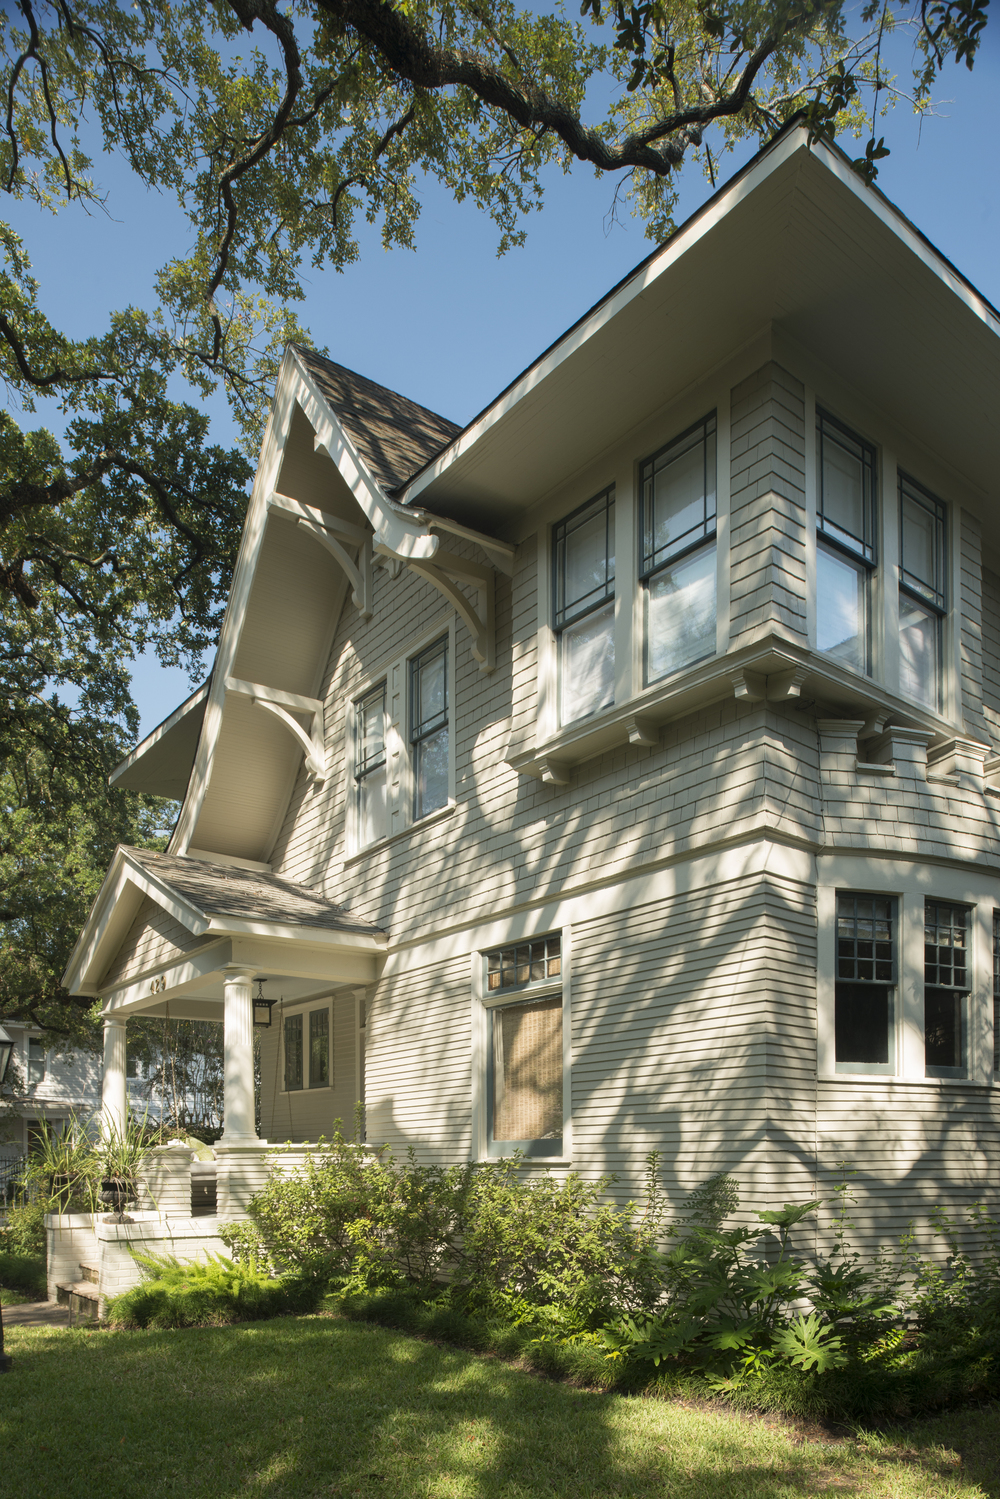 429 Bayland:  Original 1908 William Wilson two-story home carefully preserved and expanded.